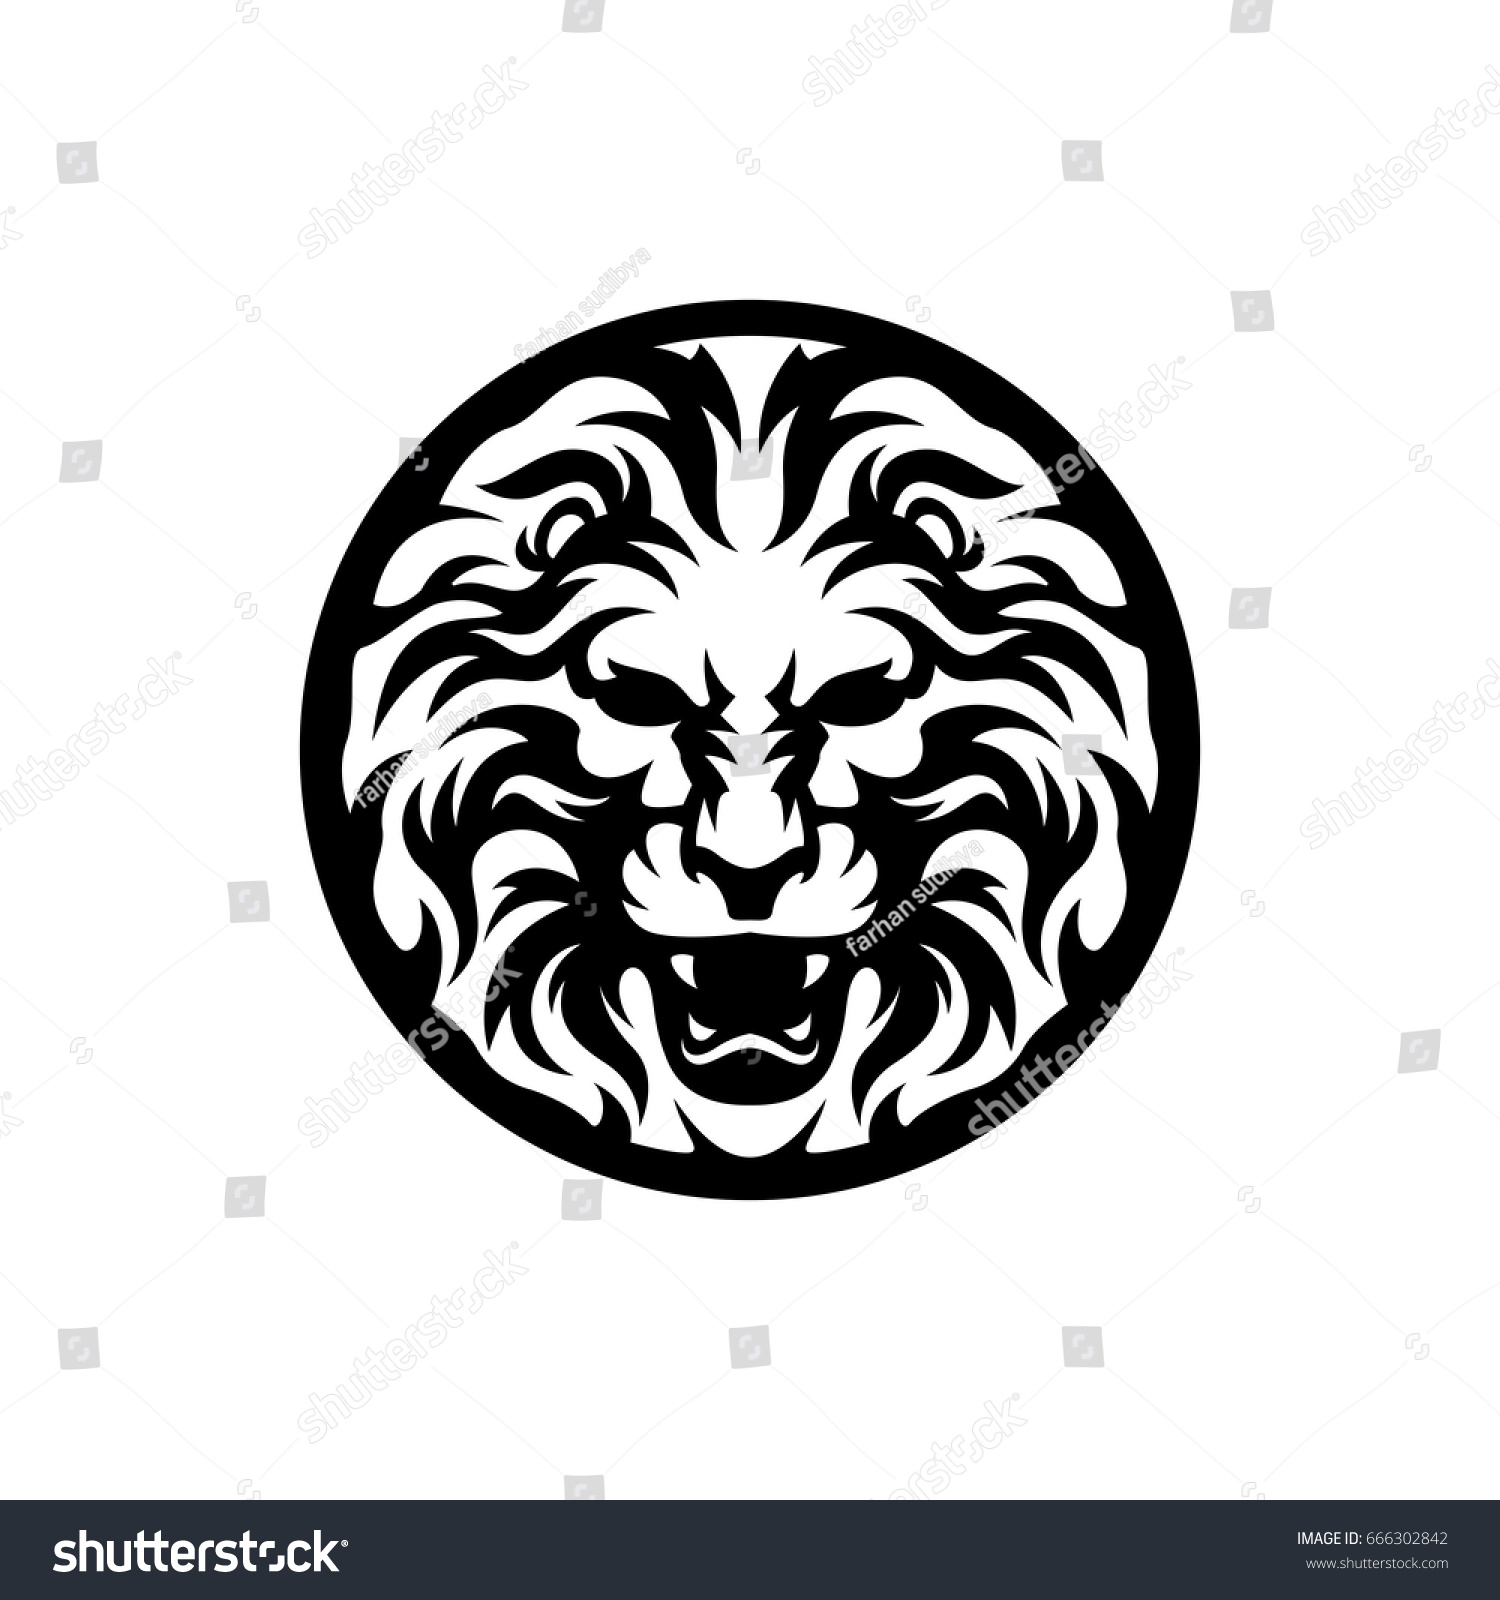 Medal Lion Silhouette Symbol Stock Vector Royalty Free 666302842